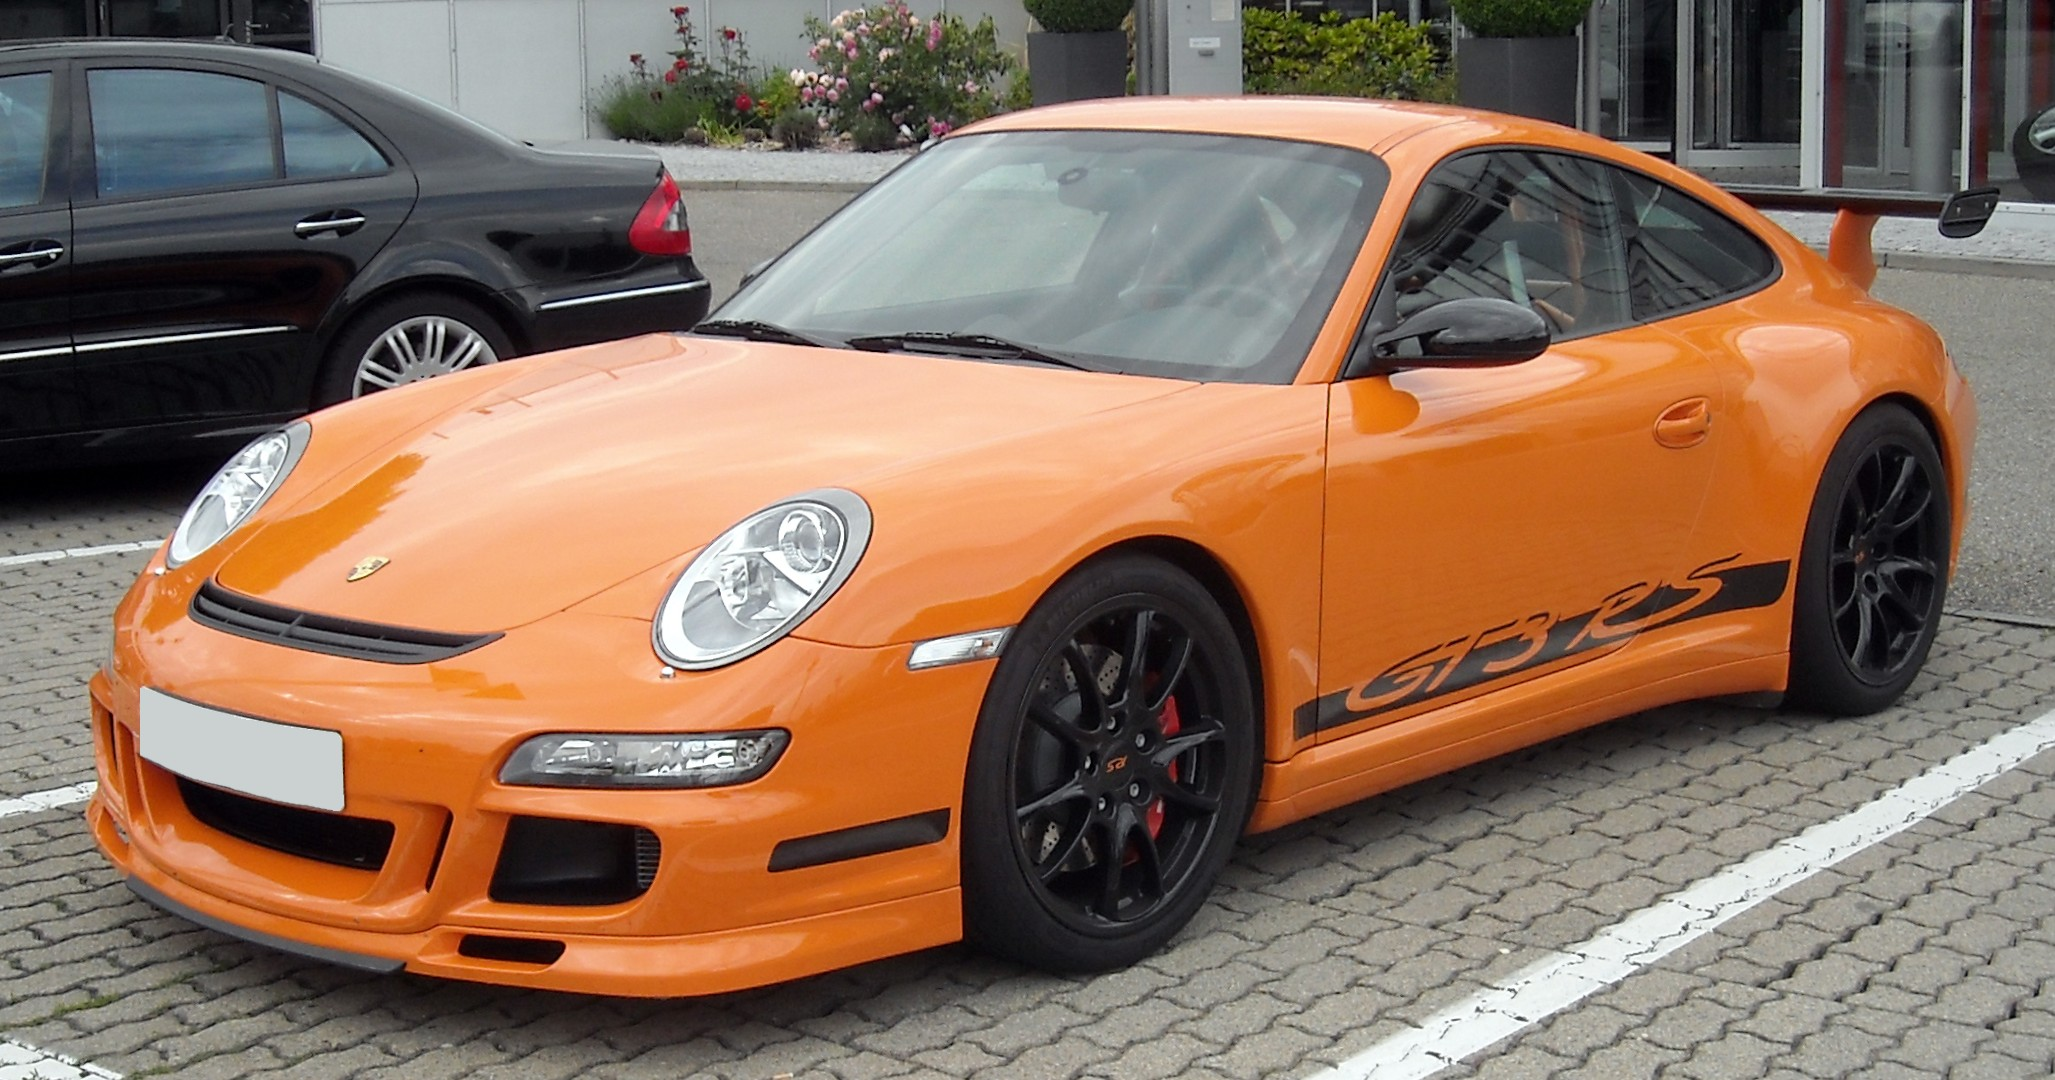 File Porsche 911 Gt3 Rs Front 20090521 Jpg Wikimedia Commons